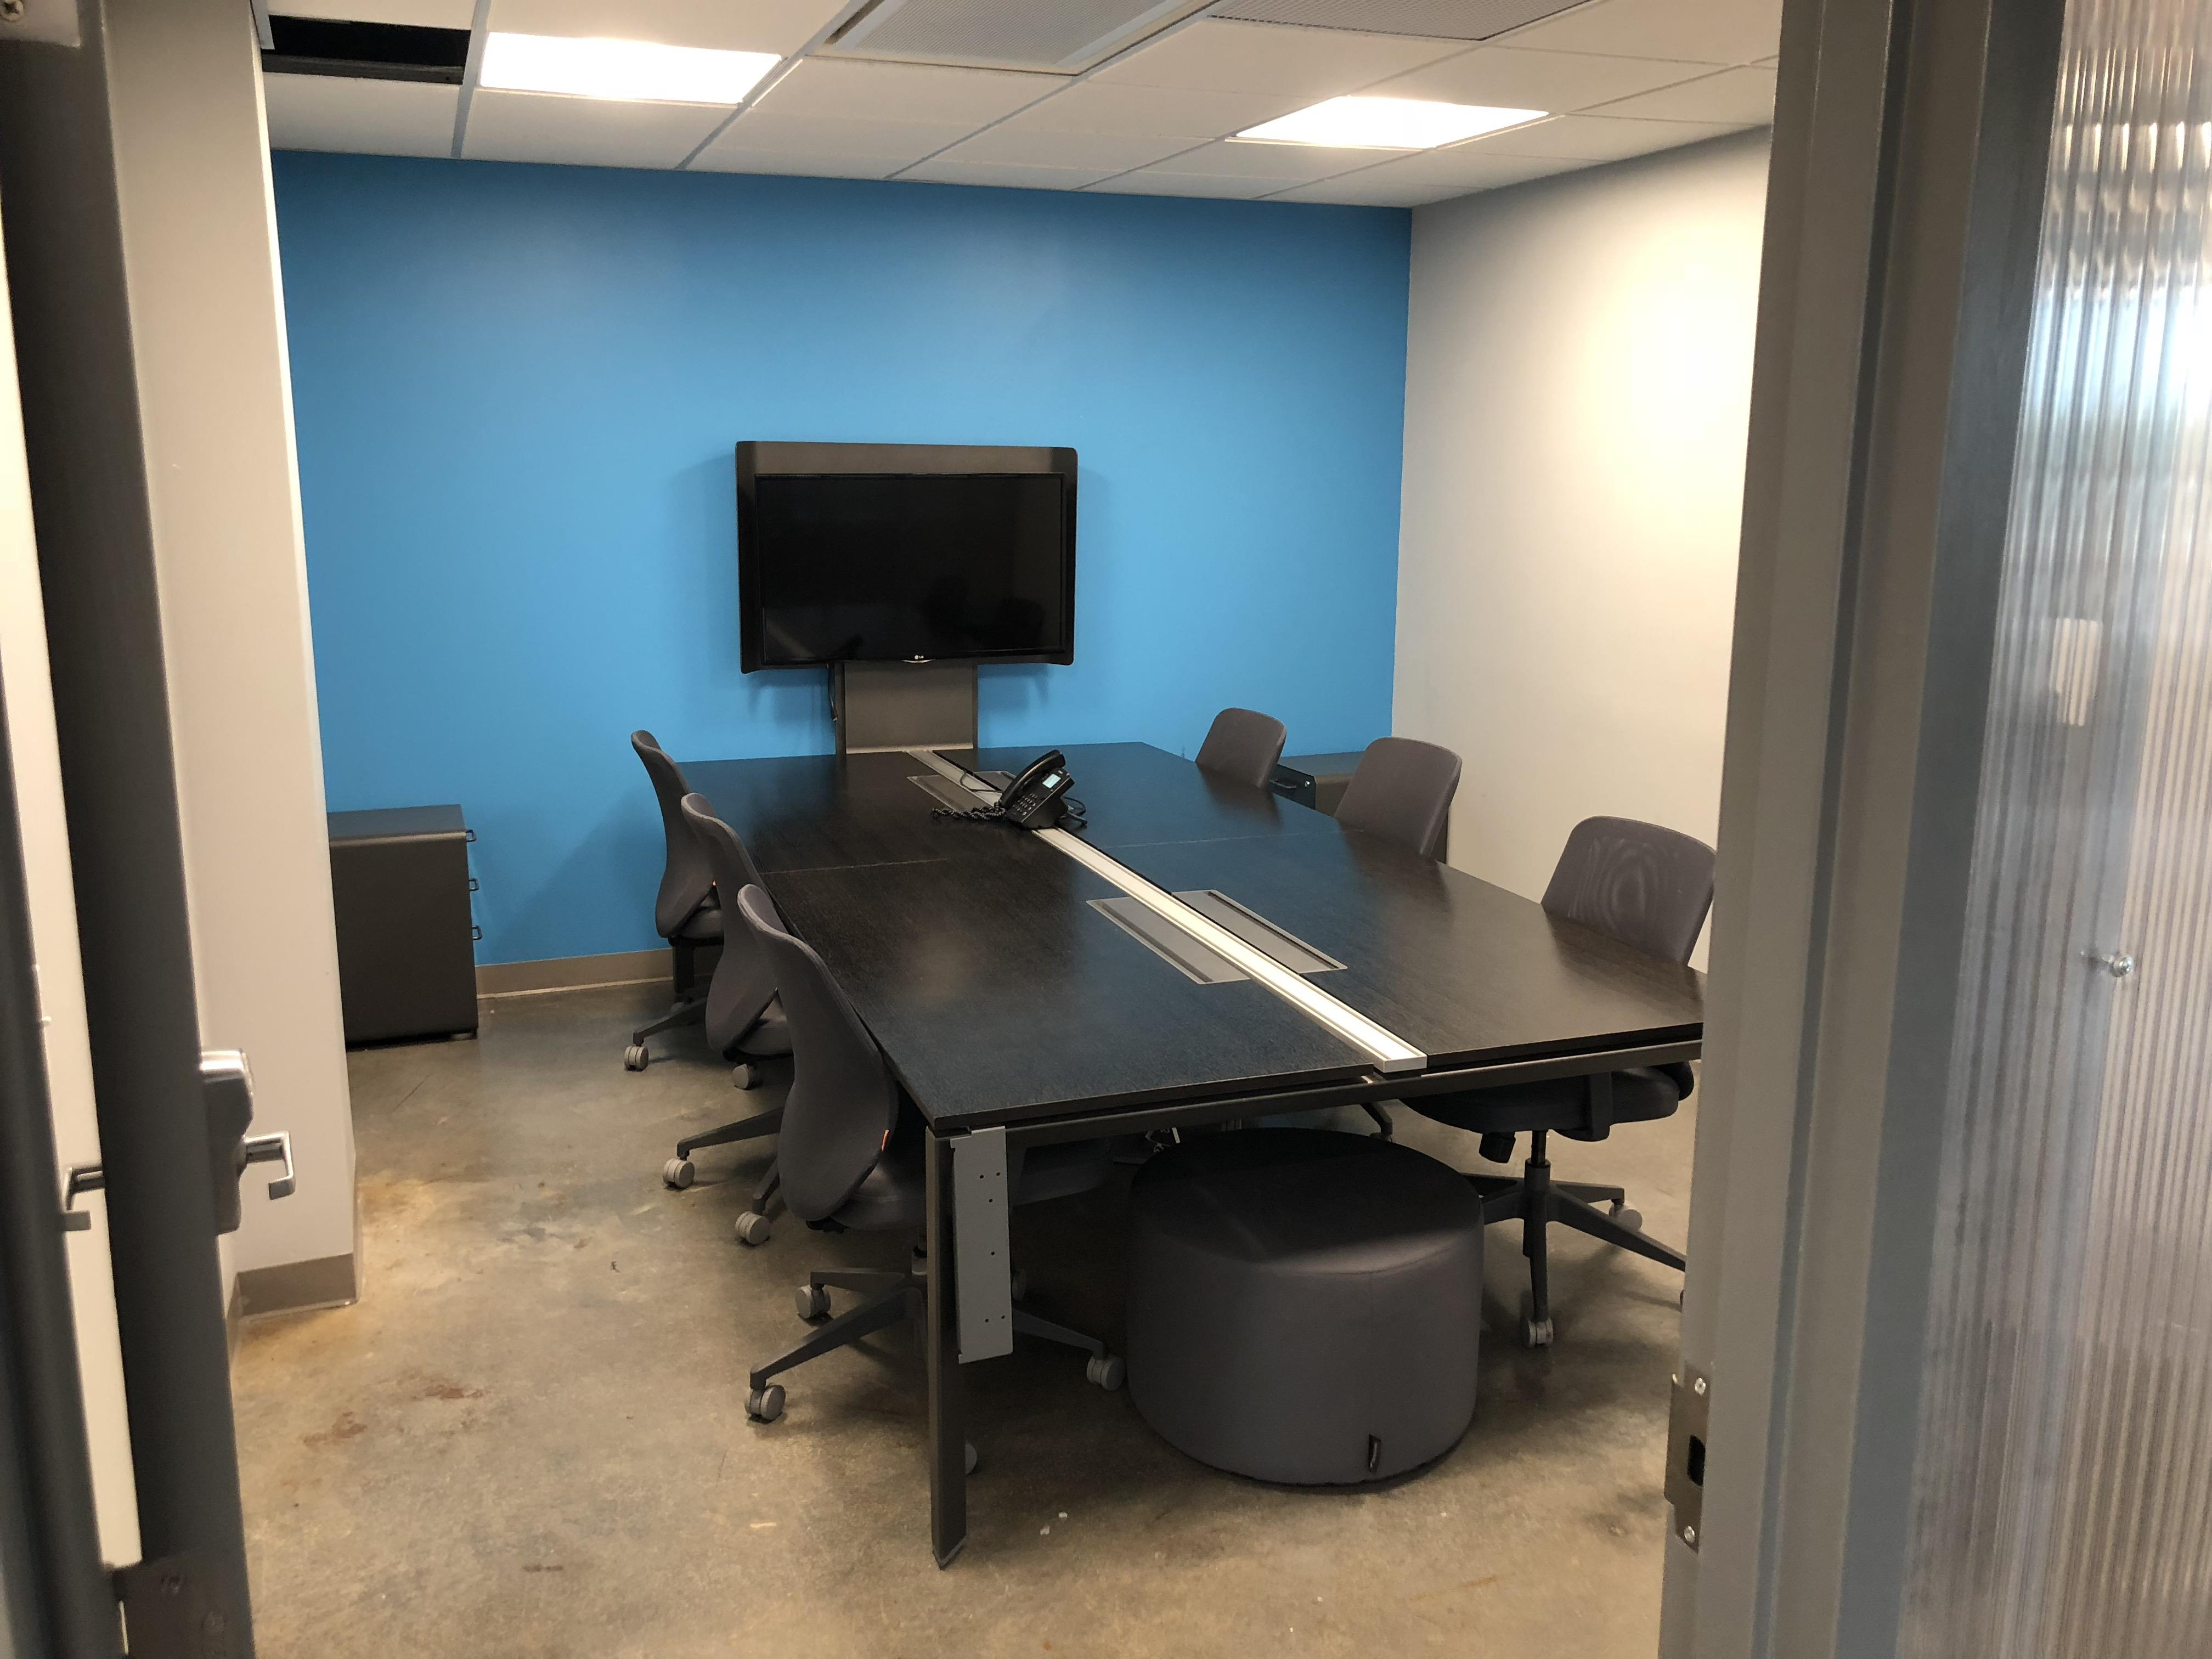 1776 University City - Office 112 - 8 person office